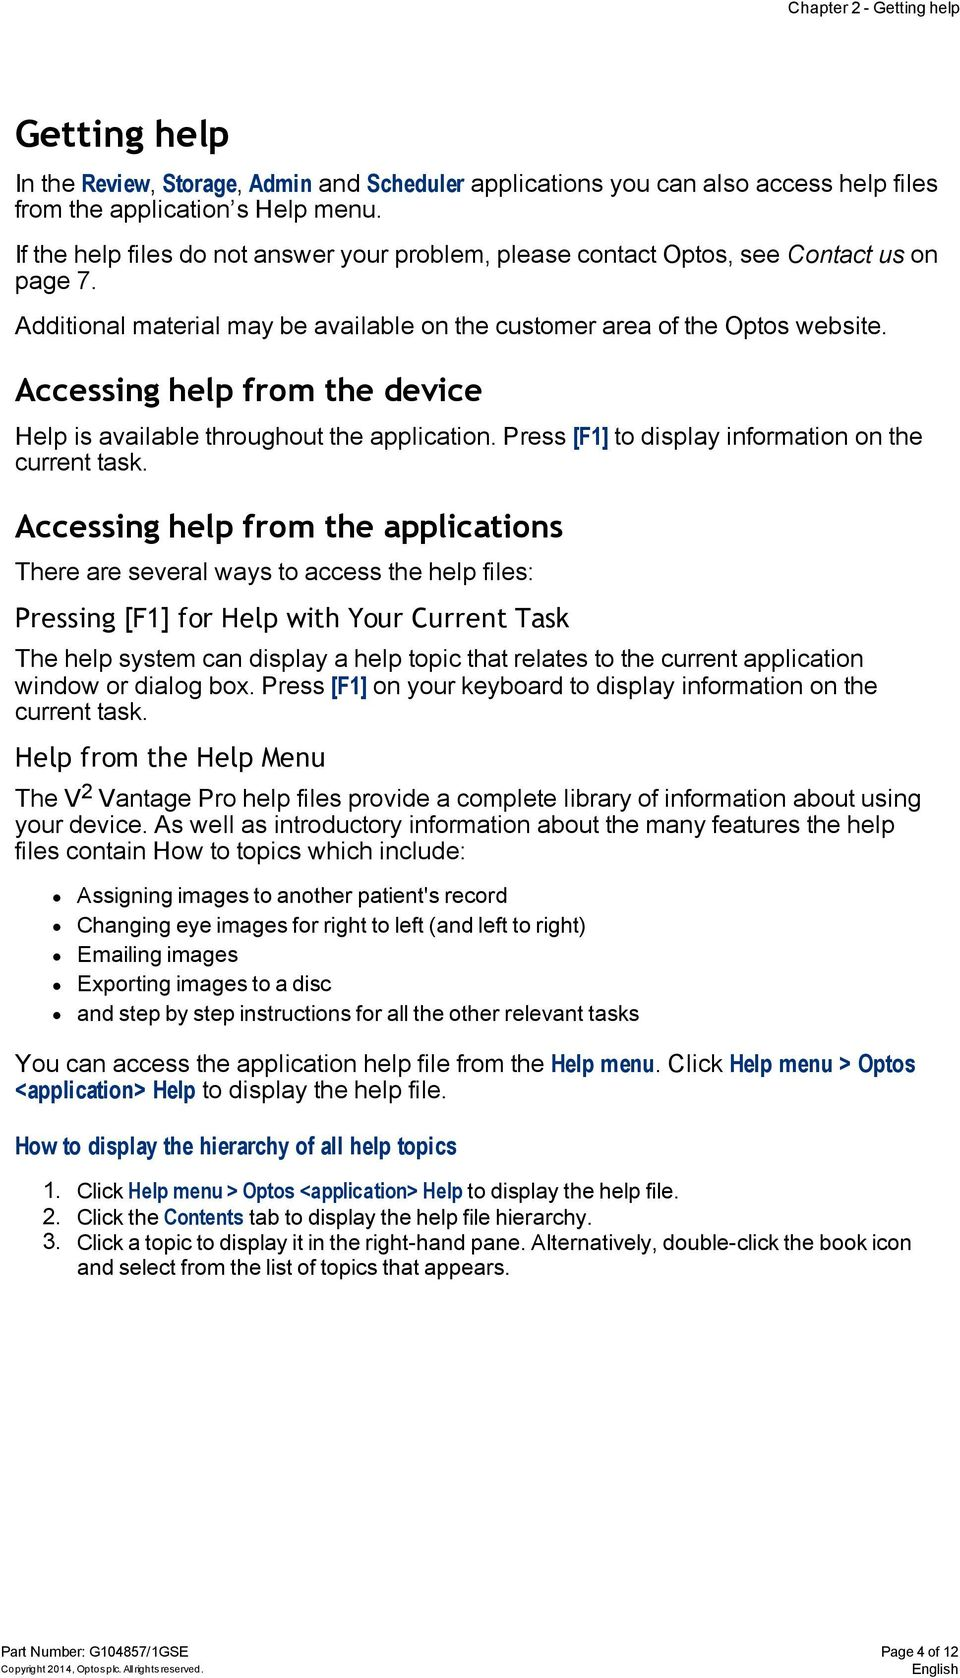 Accessing help from the device Help is available throughout the application. Press [F1] to display information on the current task.